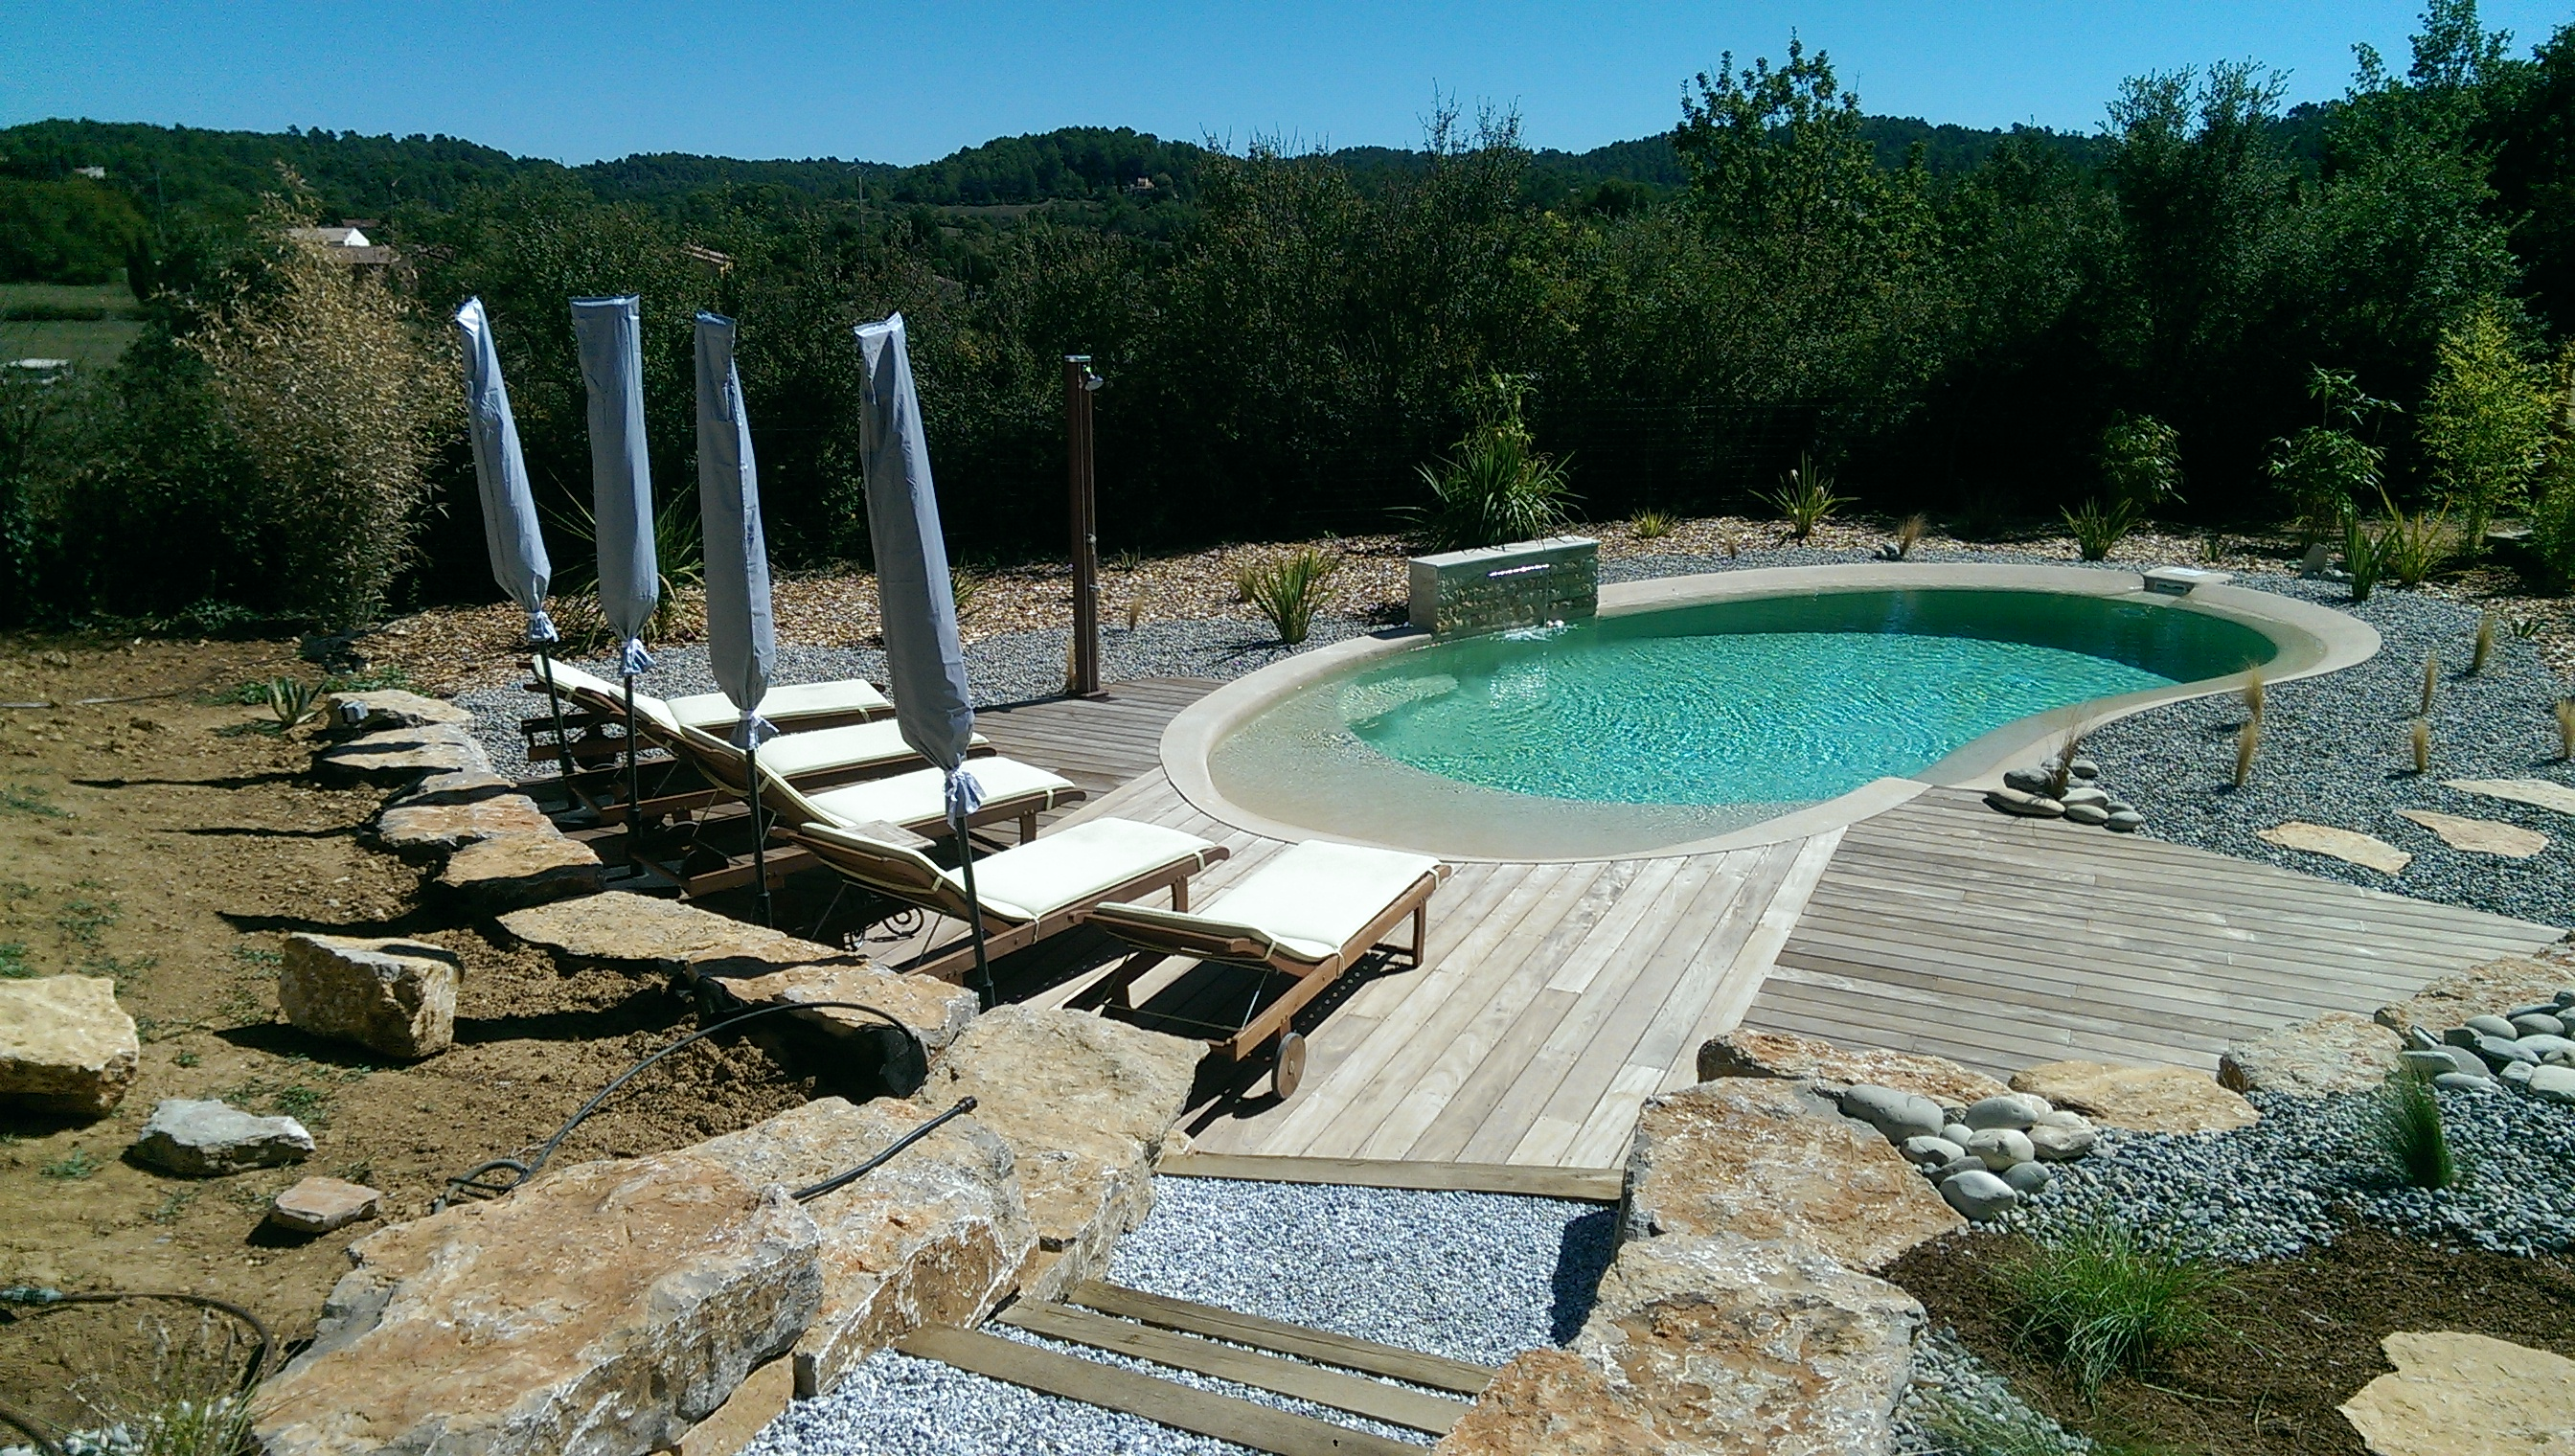 Am nagement autour d 39 une piscine brignoles var fr jus for Photo d amenagement piscine